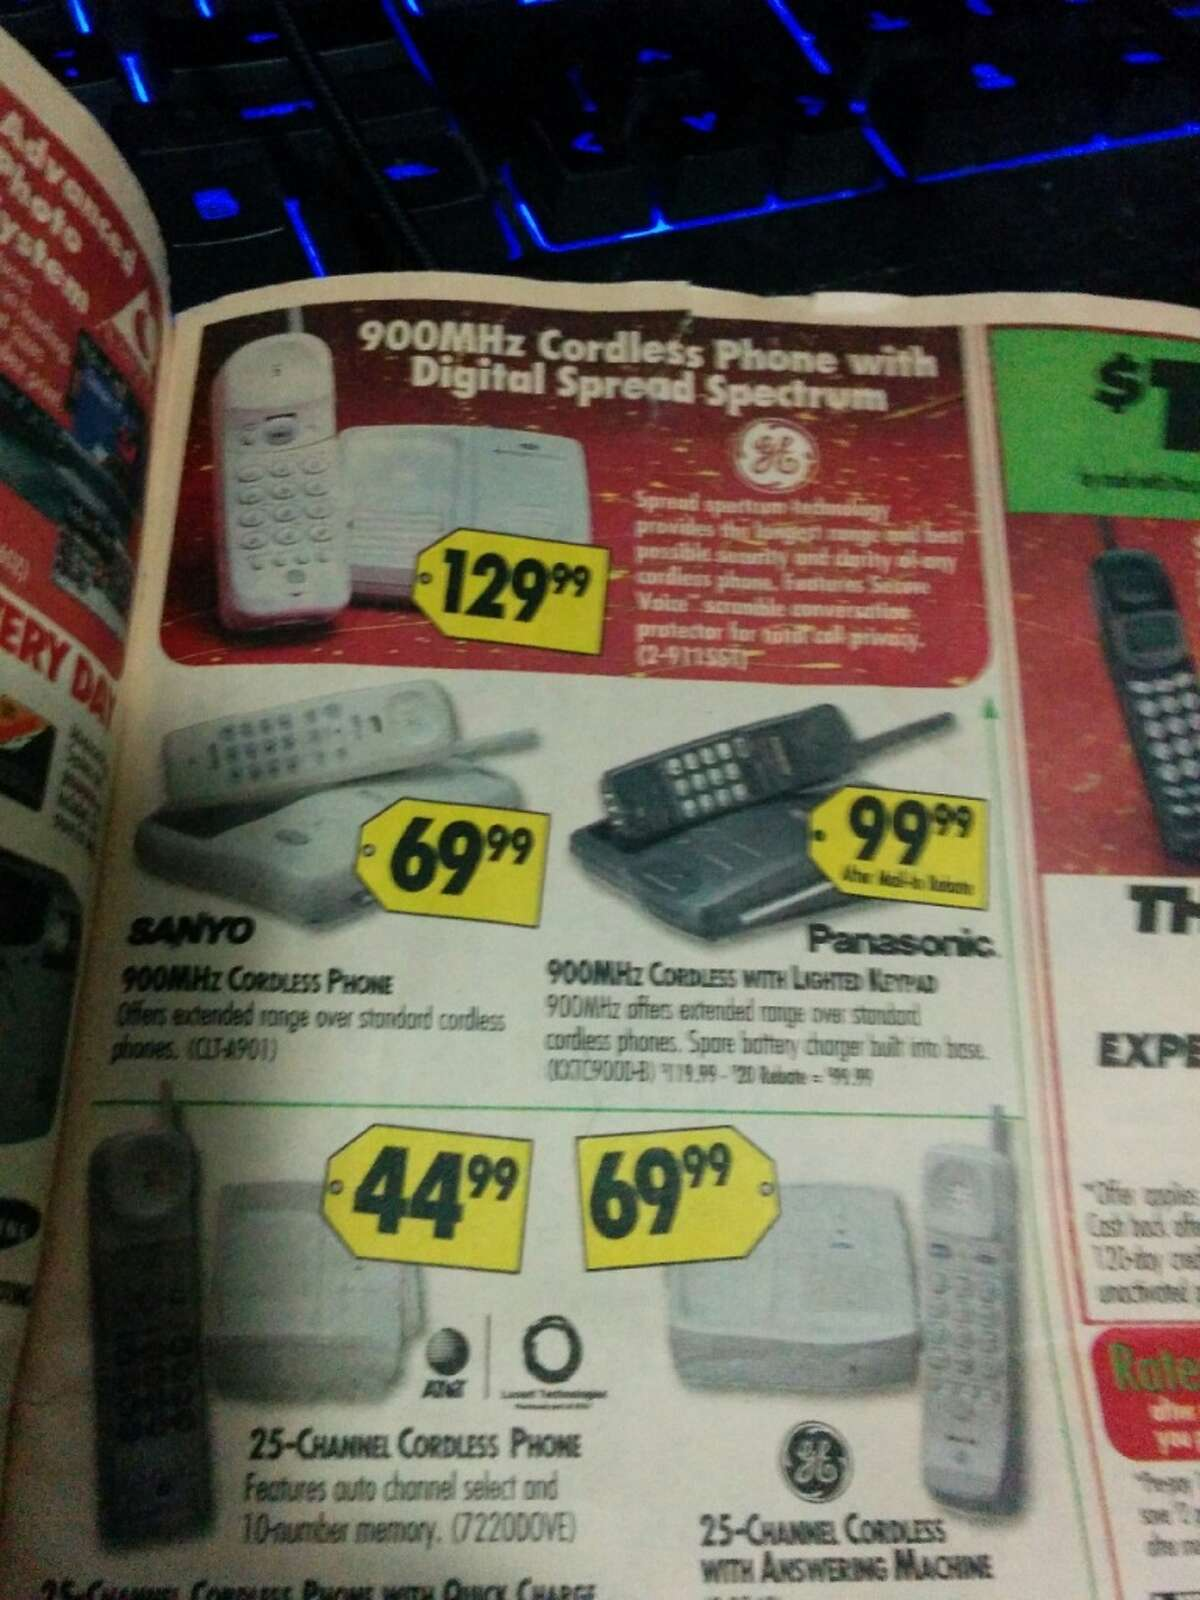 This Best Buy circular from 1998 shows just how ridiculously much technology has changed in terms of both capabilities and pricing since the late 1990s.